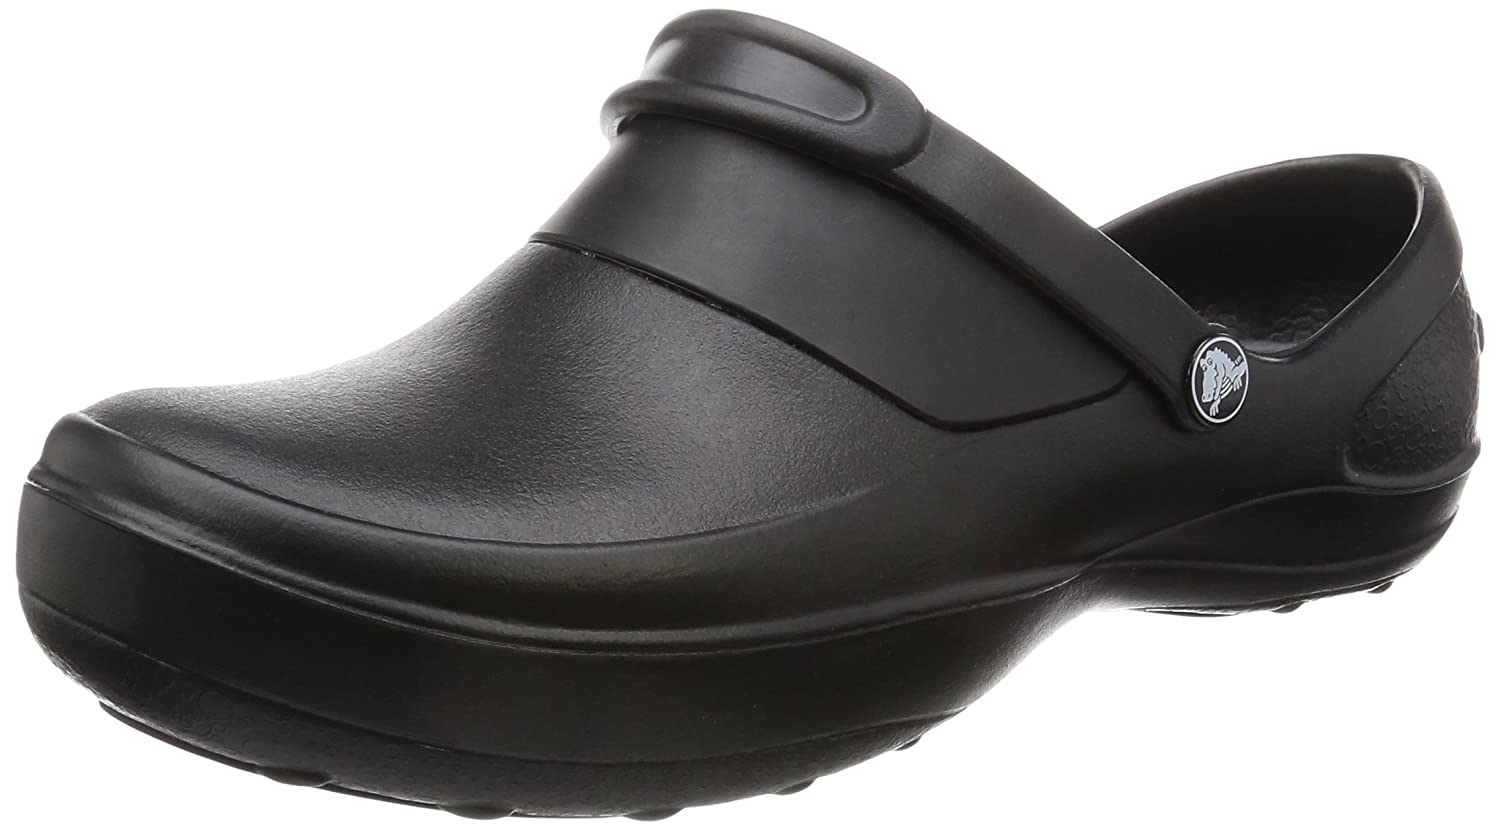 Crocs Women's Mercy Work Slip Resistant Clog | Great Nursing or Chef Shoe